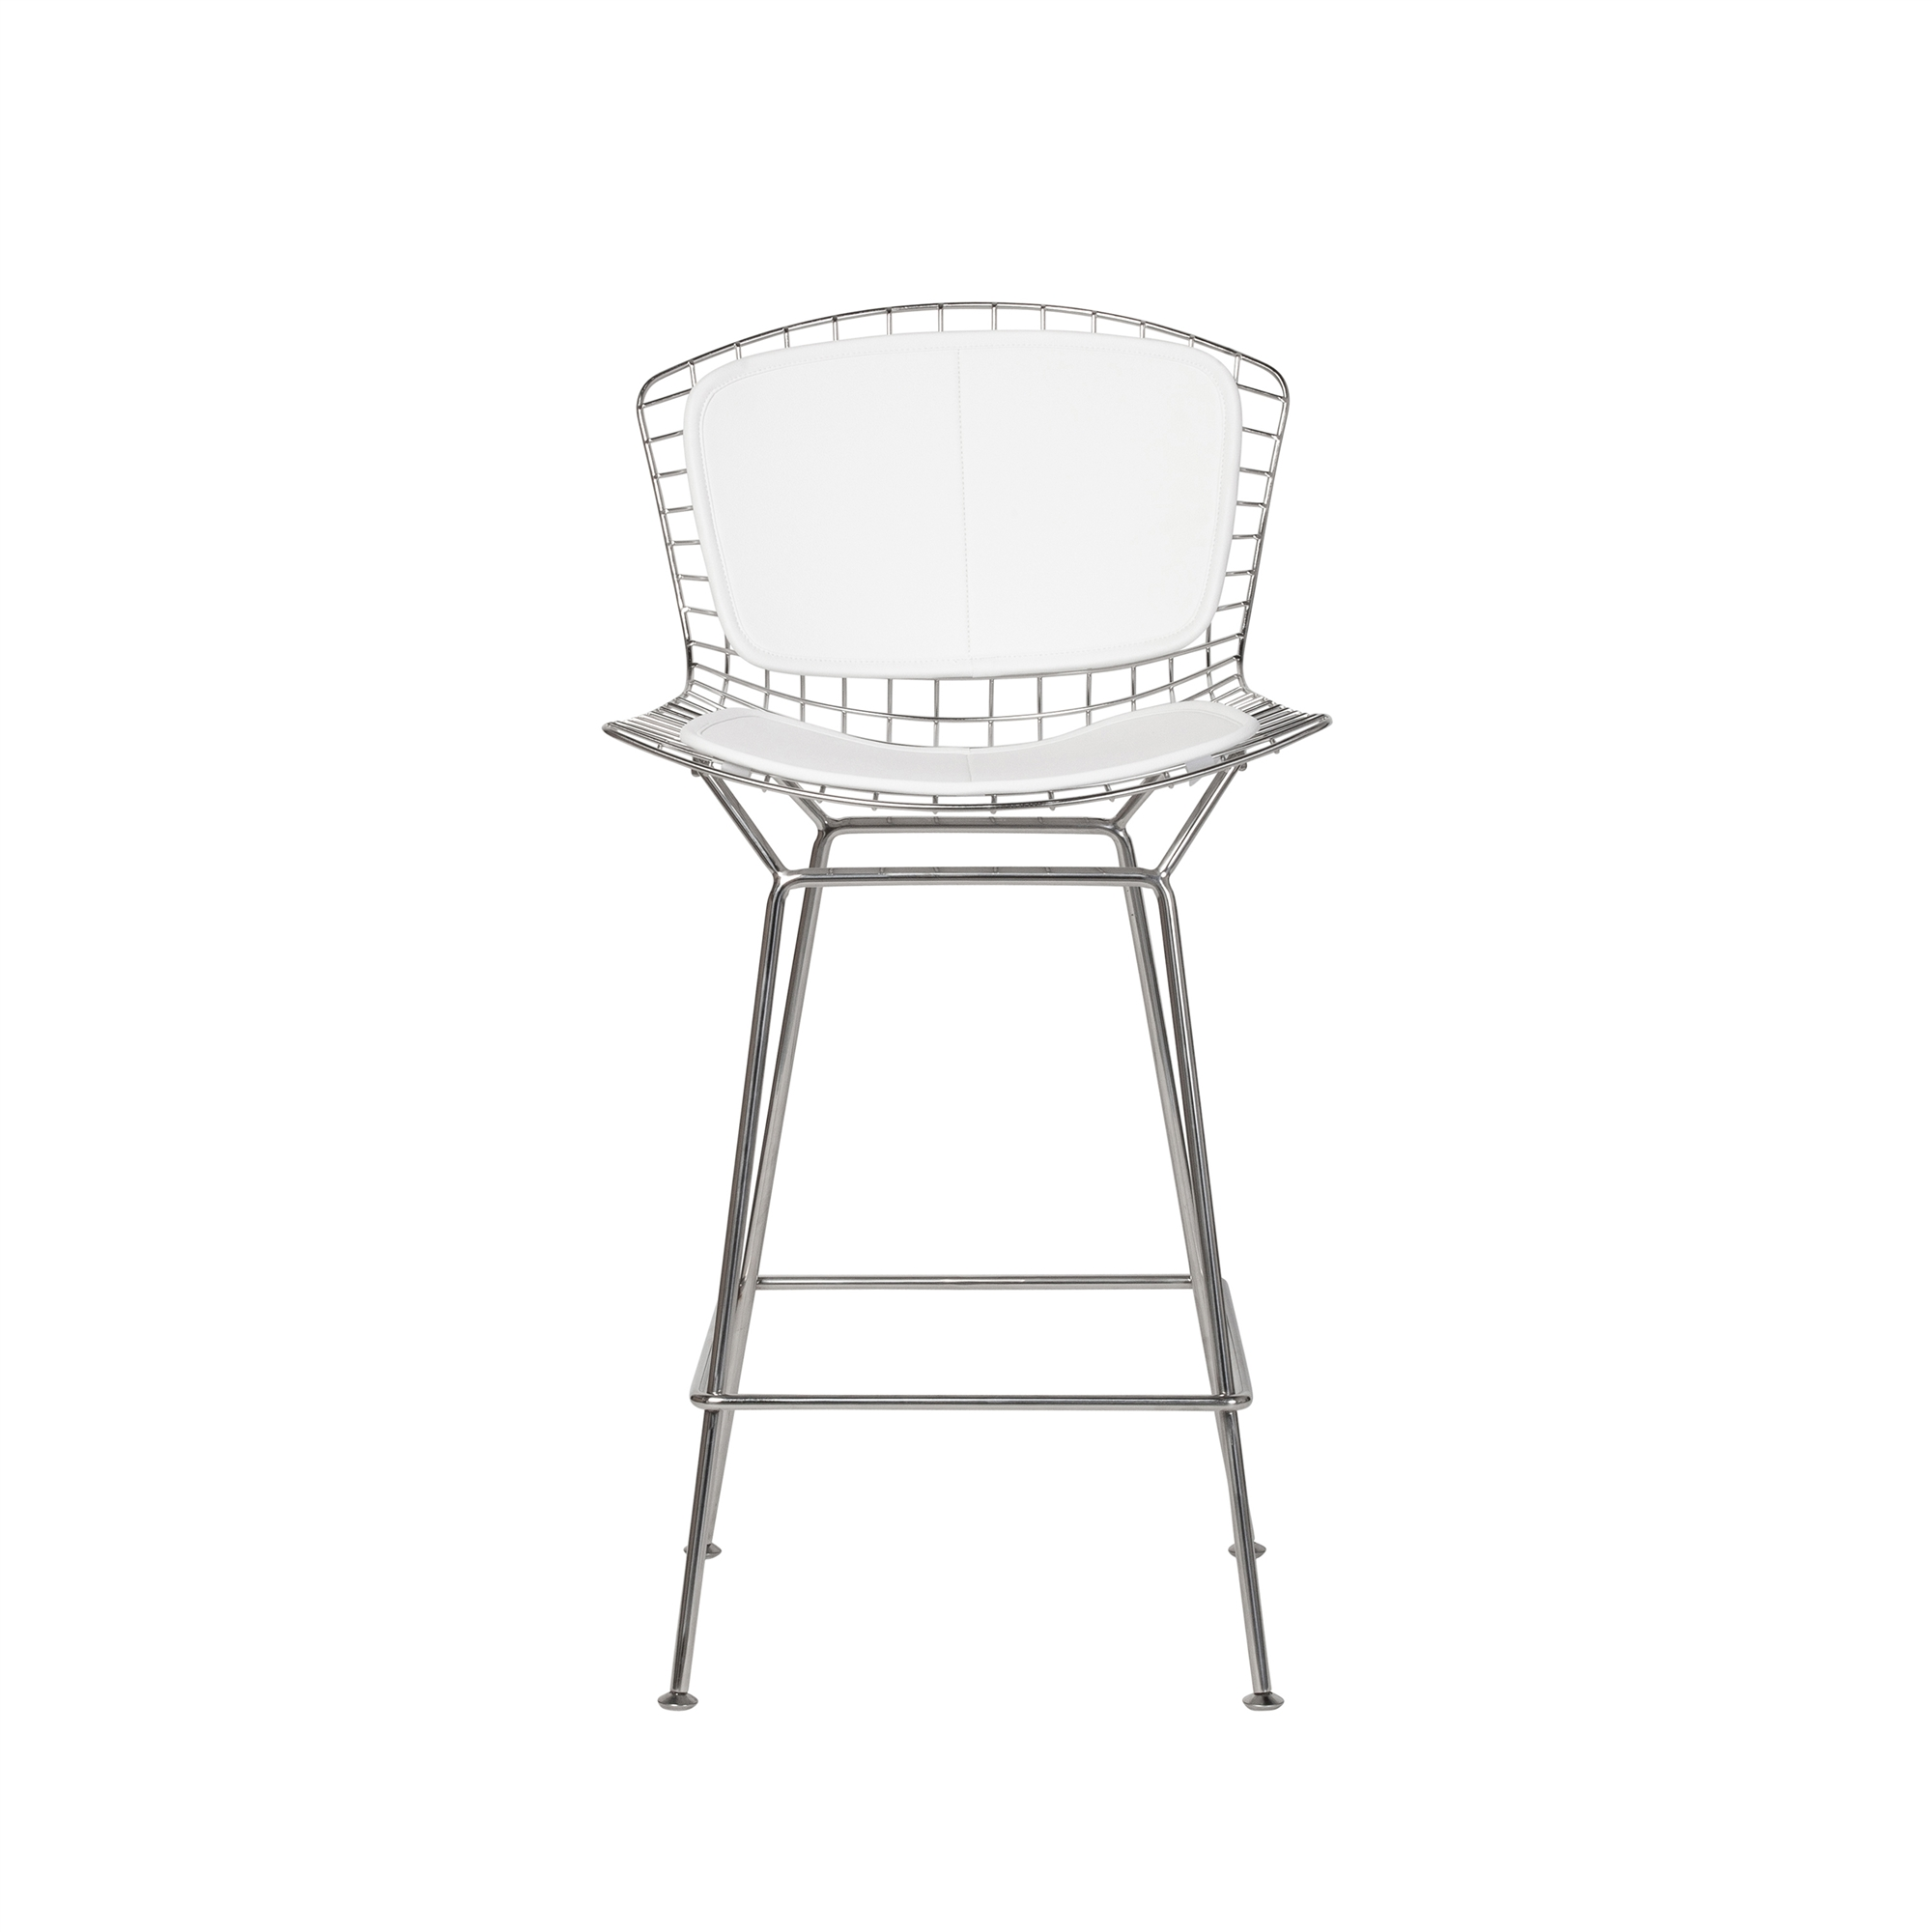 Super Bertoia Style Stainless Steel Counter Stool White Seat Pad Ocoug Best Dining Table And Chair Ideas Images Ocougorg